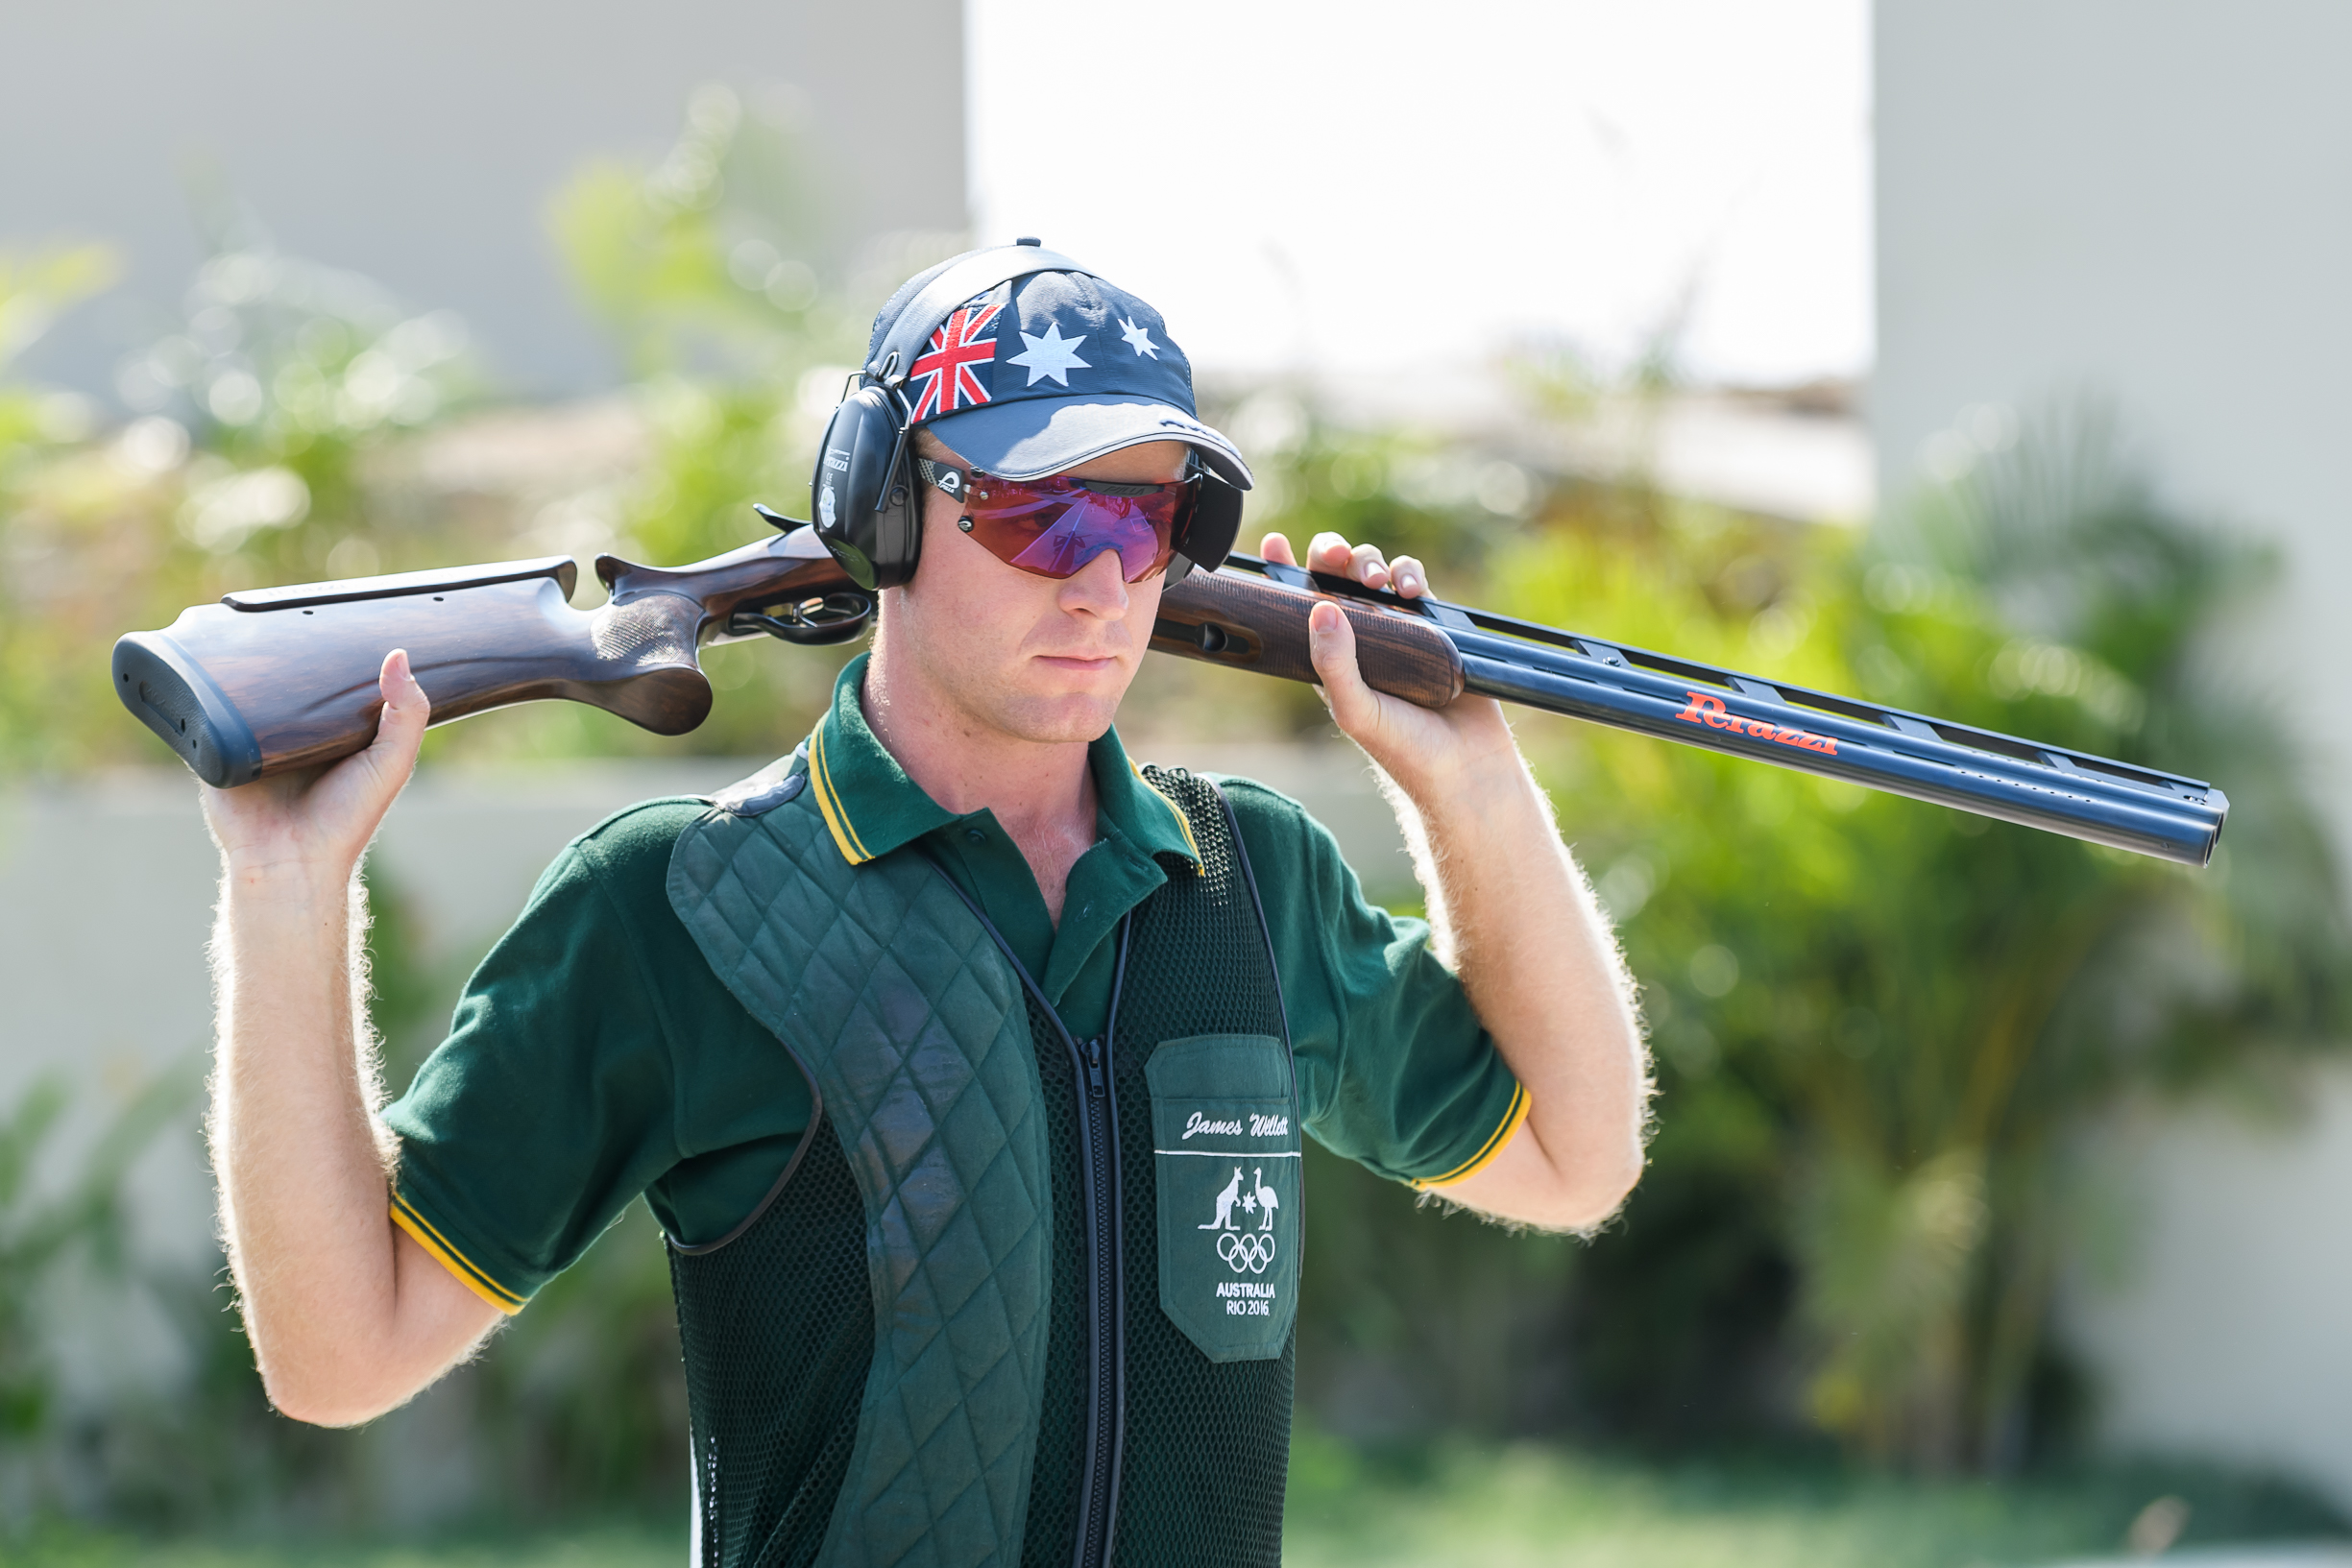 TWO OUT OF TWO FOR FIOCCHI TEAM: JAMES WILLETT GRABS GOLD IN ACAPULCO